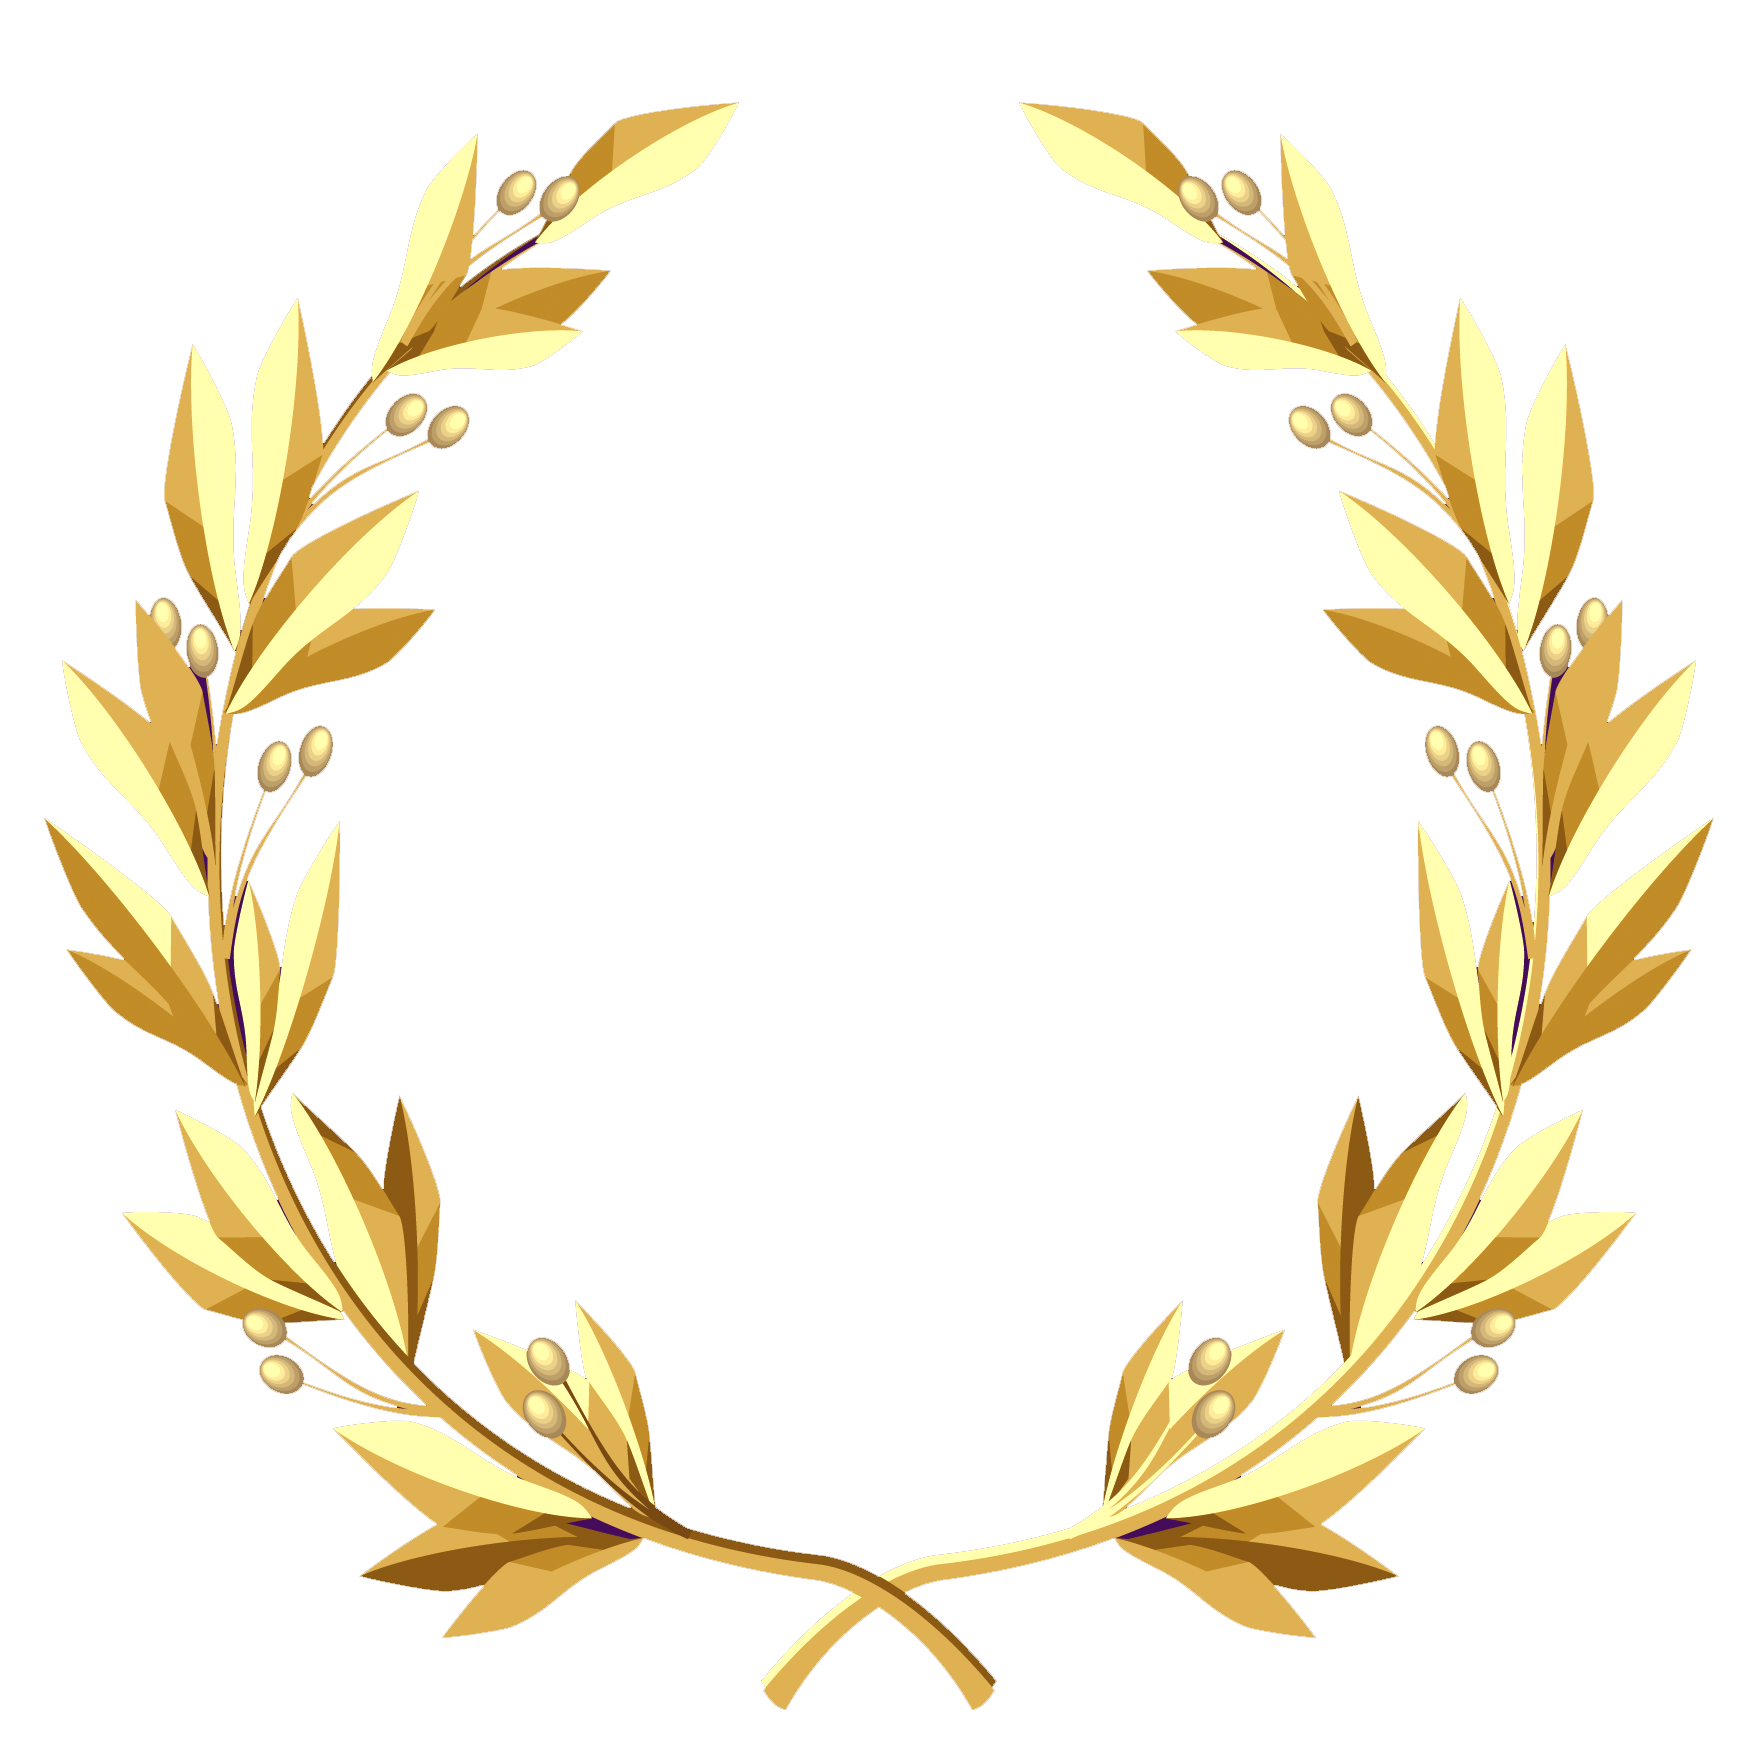 clip art royalty free Gold wreath clipart. Transparent png picture gallery